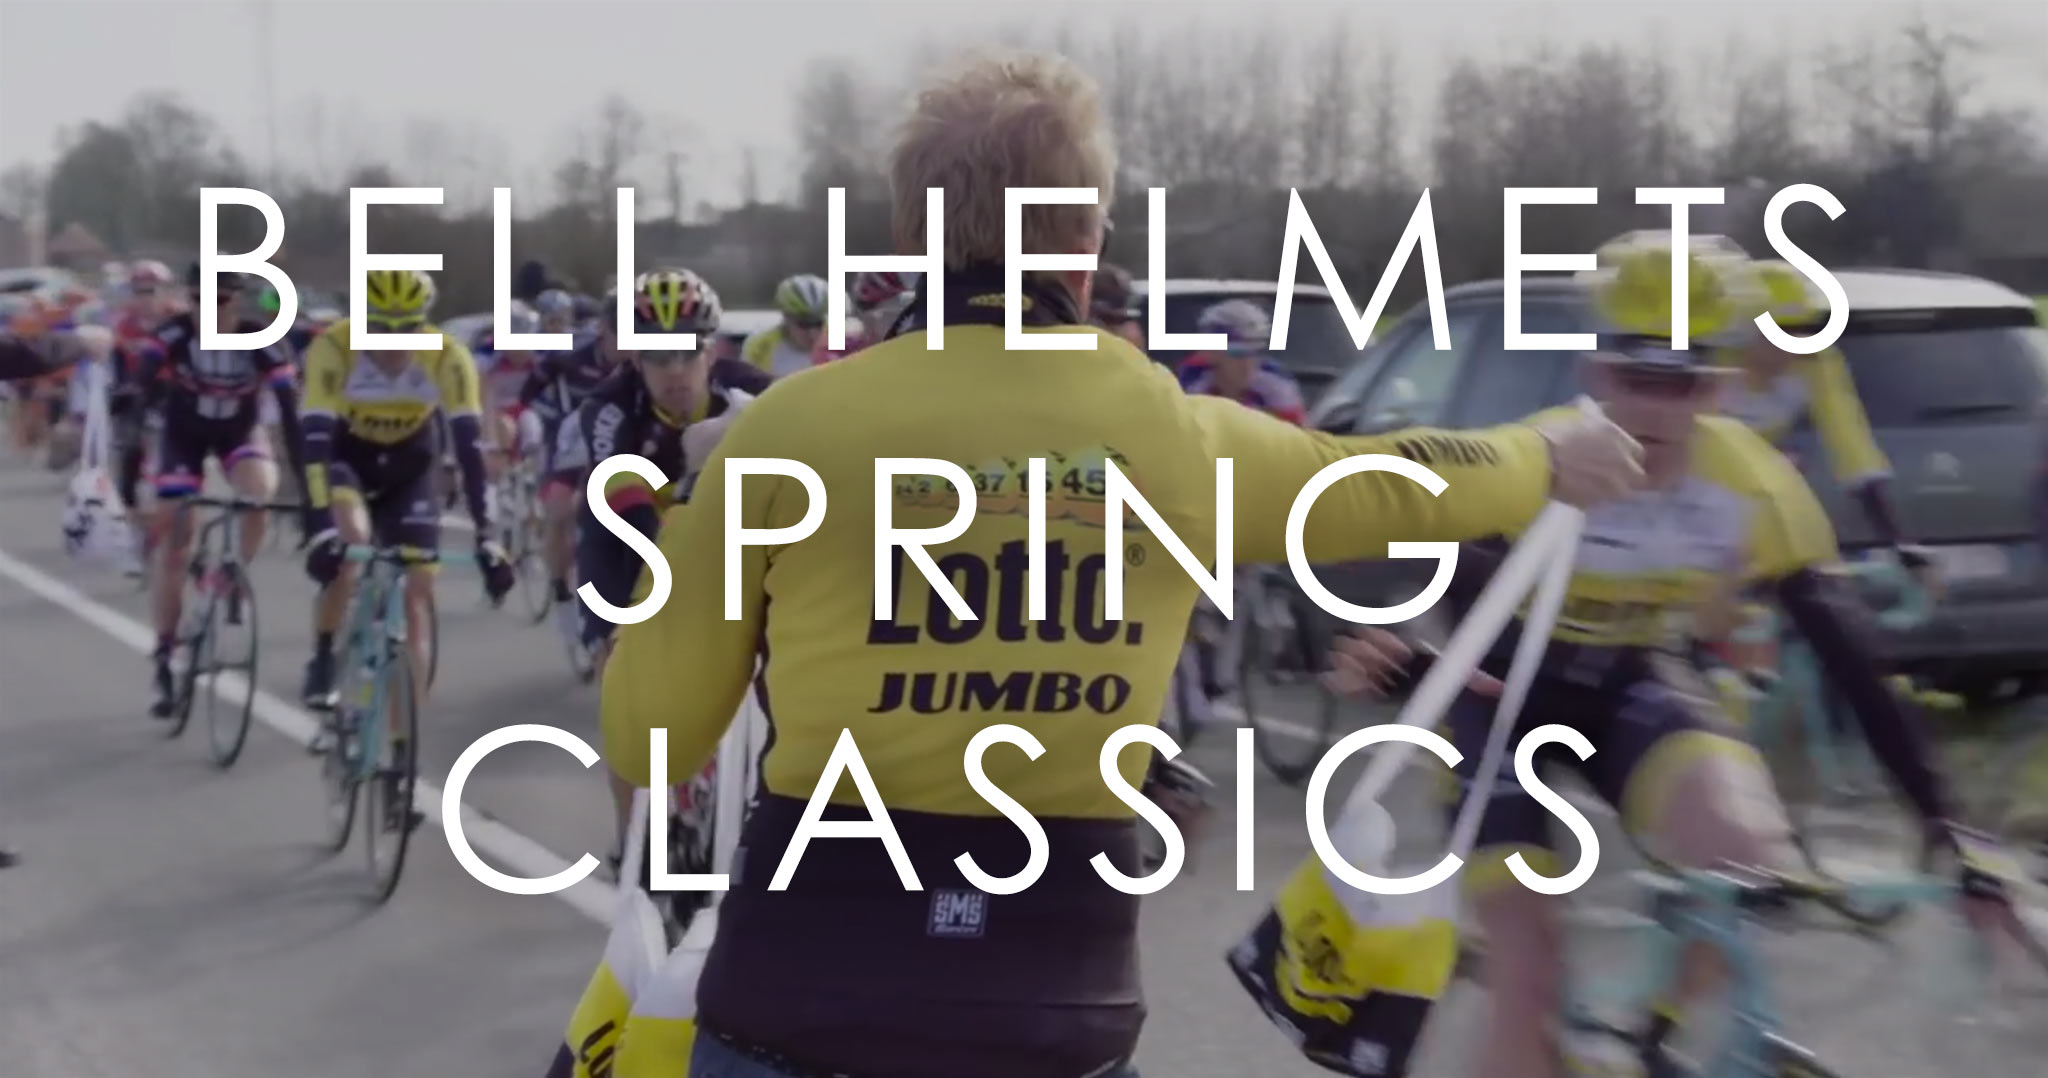 Bell Helmets Spring Classics: Tour of Flanders